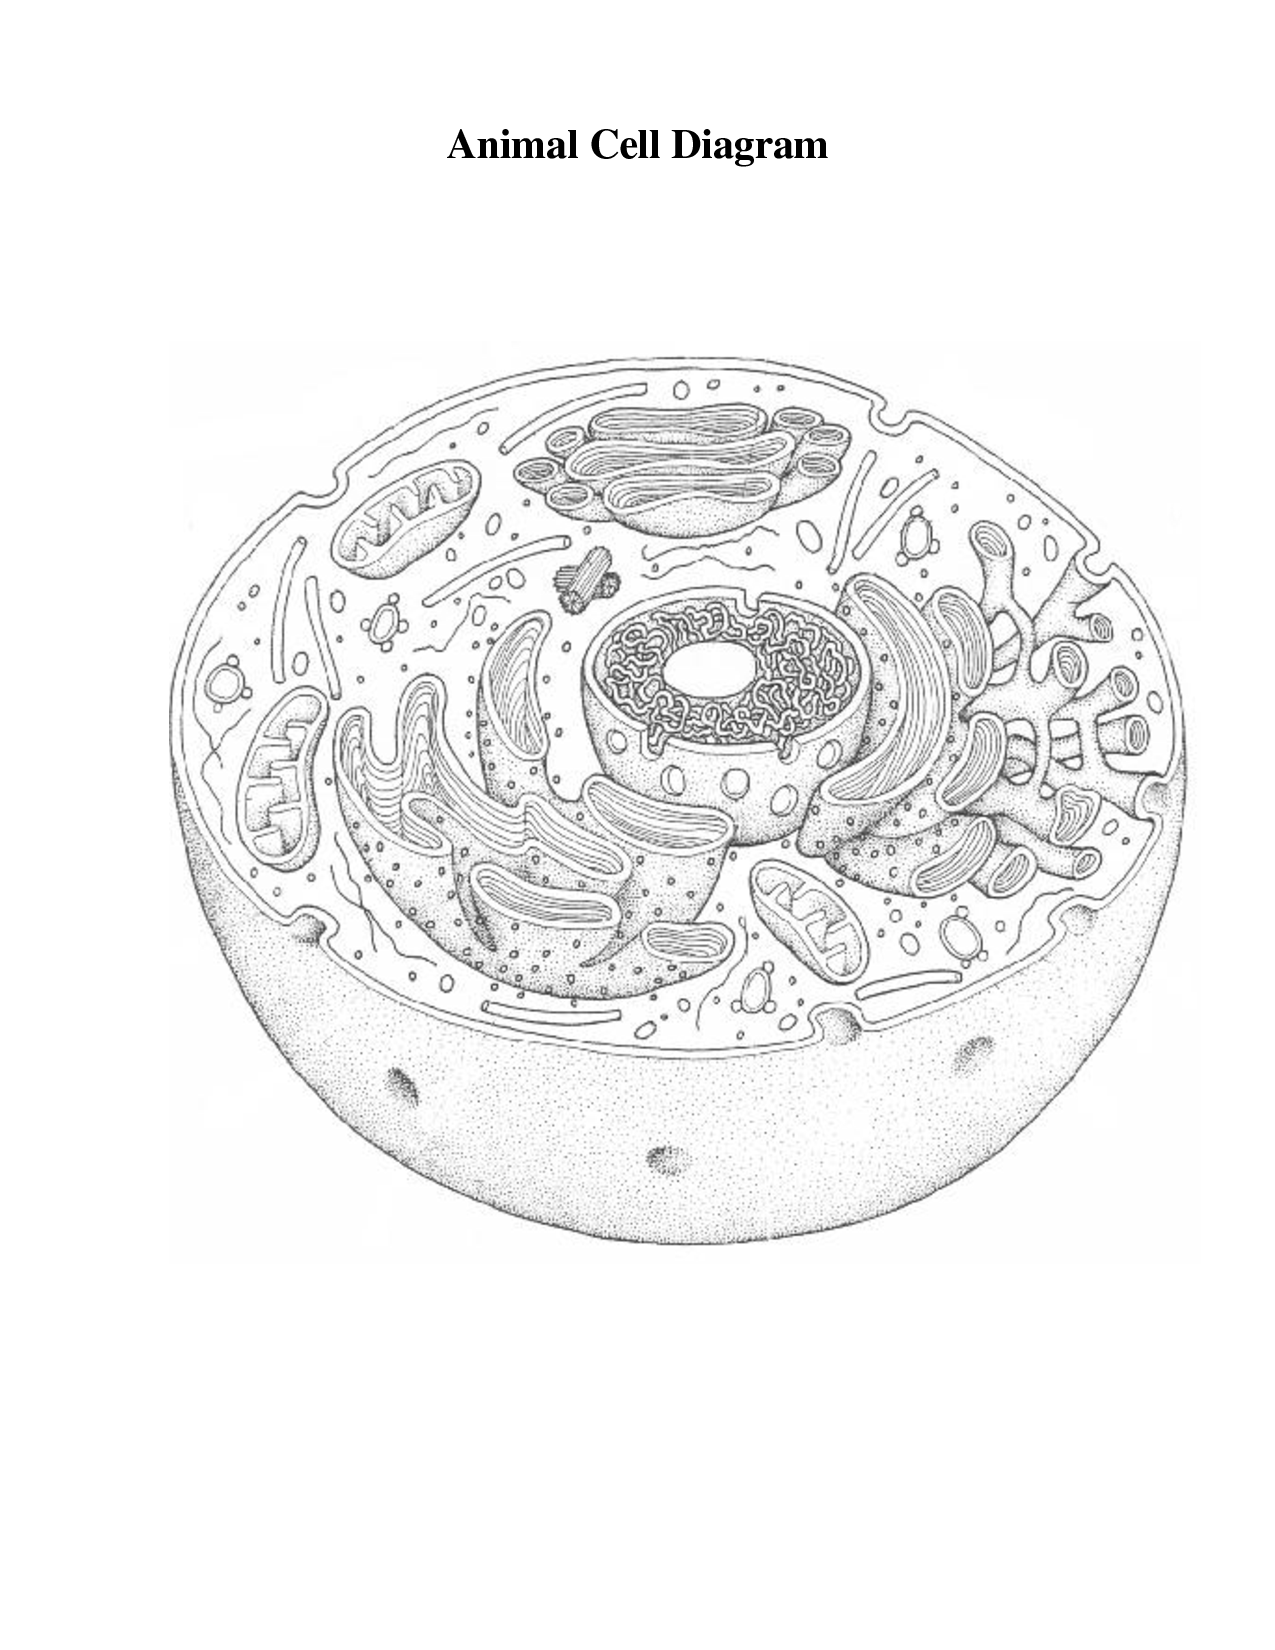 animal cell diagram coloring 3d animal cell coloring pages free printable coloring pages cell diagram coloring animal